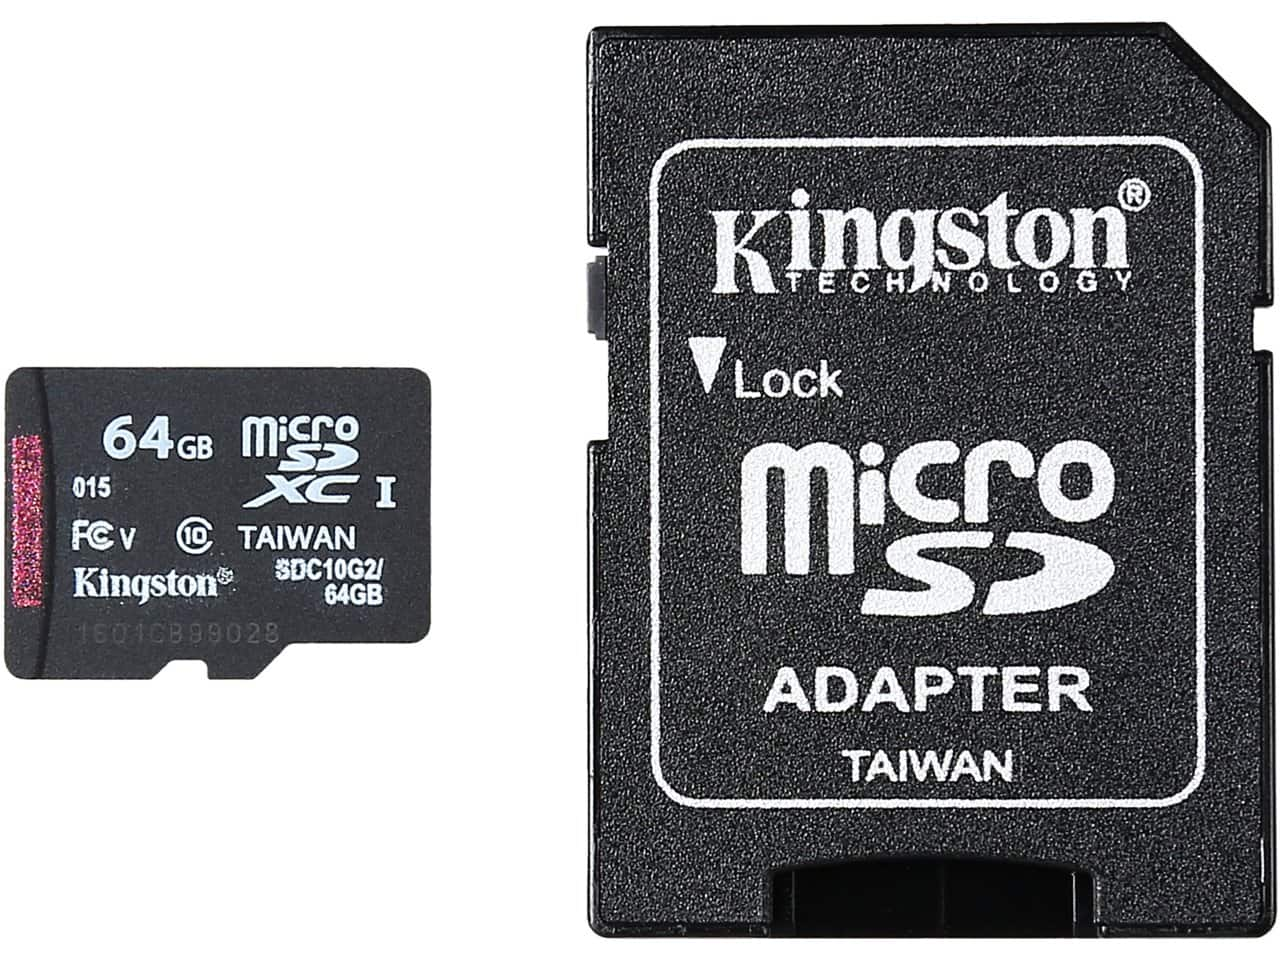 64GB Kingston Class 10 MicroSDXC Flash Card w/ Adapter  $14